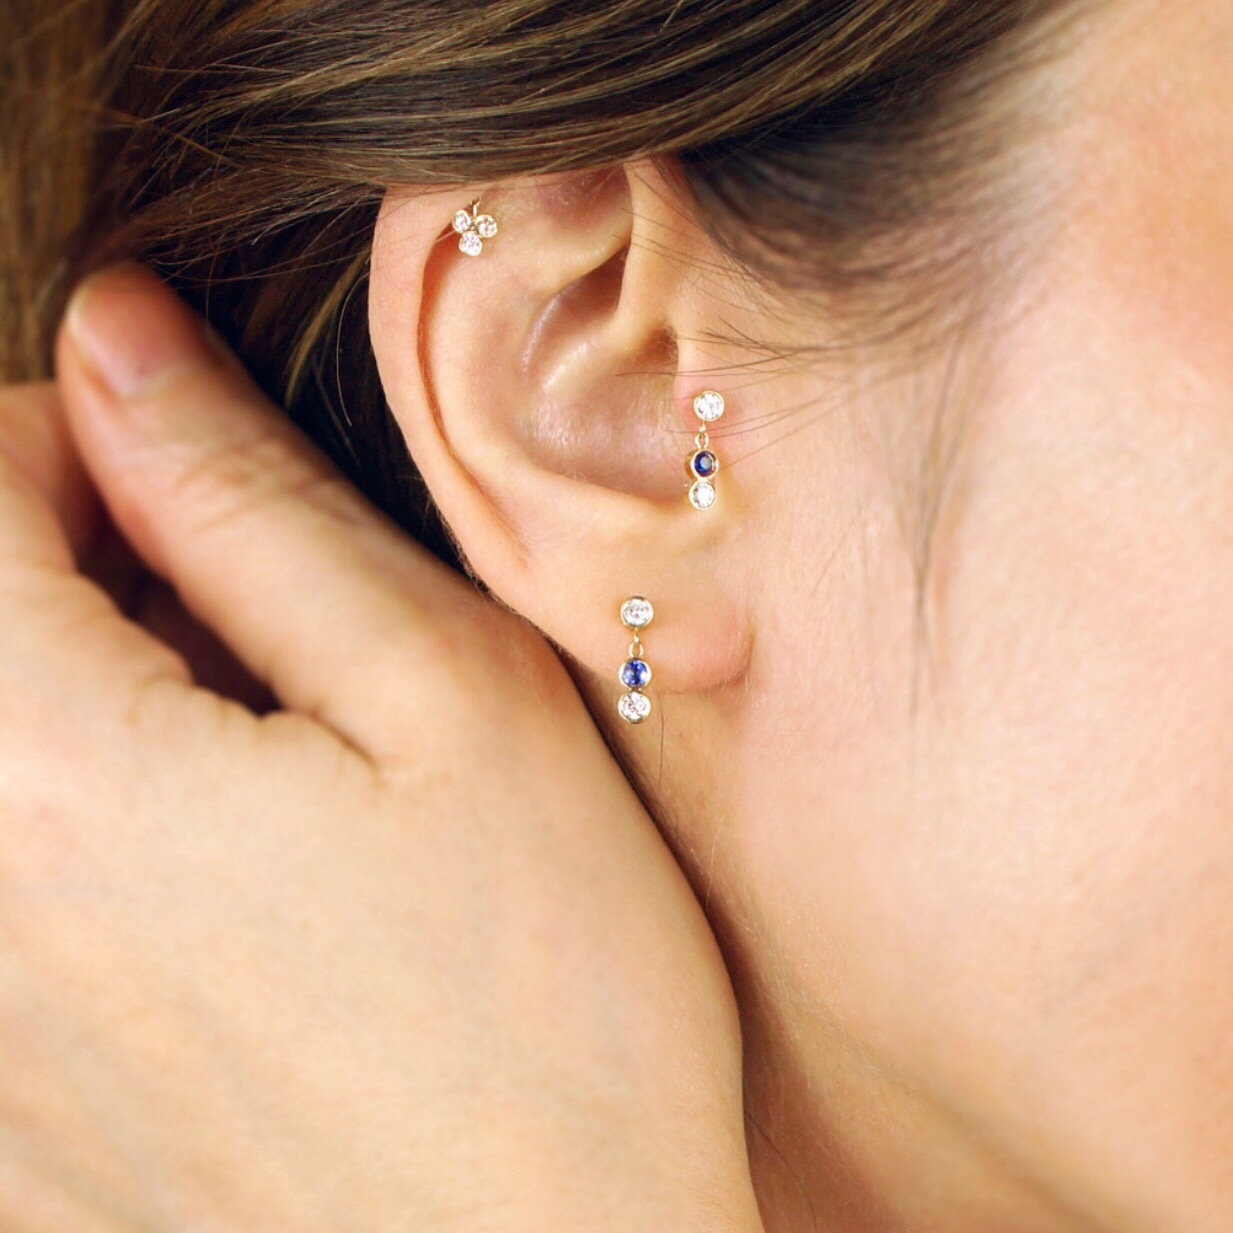 85bfeae29 Your ear cartilage deserves decoration. Look for a trusted jeweller who  sells tragus earrings made from precious metals and stones such as  diamonds, gold, ...